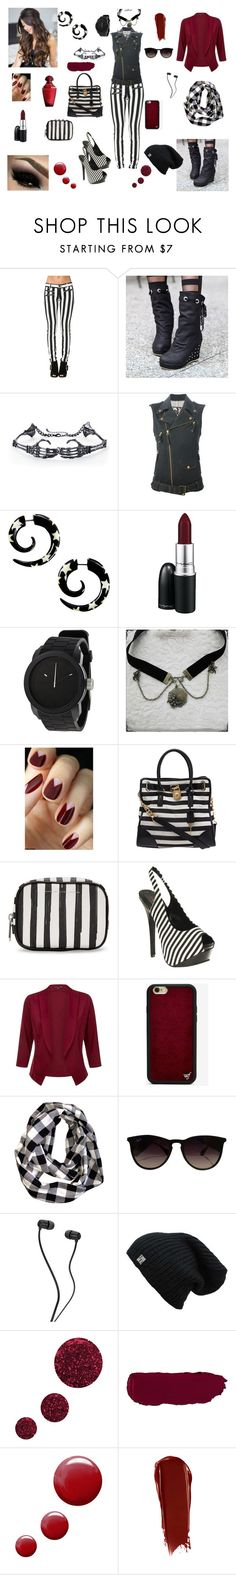 """""""doppler effect"""" by knight-lover ❤ liked on Polyvore featuring Pretty in Boots, Jean-Paul Gaultier, MAC Cosmetics, Diesel, COS, Michael Kors, Marc by Marc Jacobs, Wildflower, Ray-Ban and Topshop"""